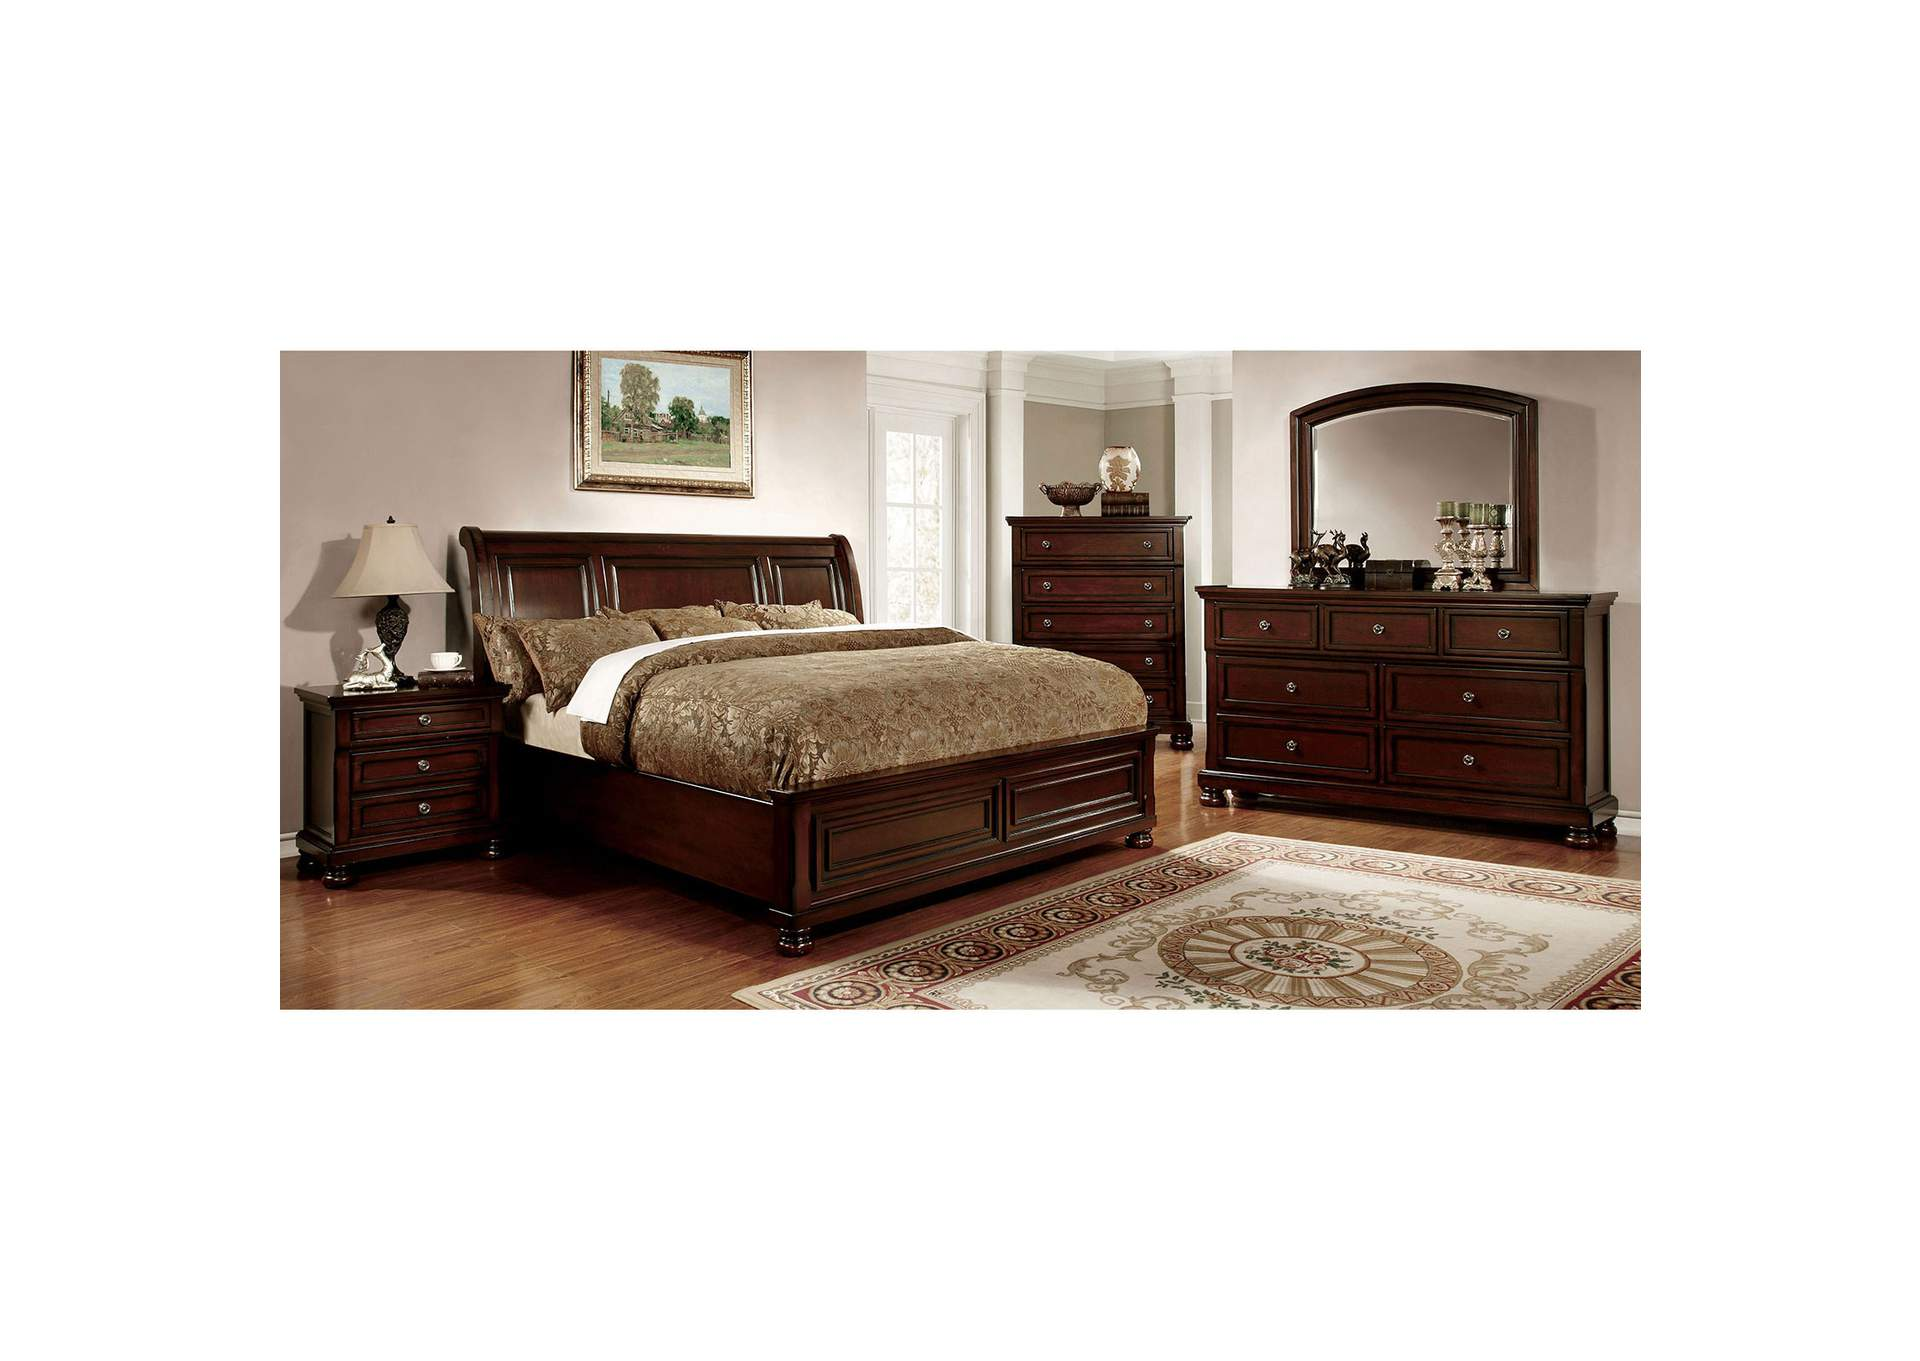 Northville Dark Cherry California King Platform Bed w/Dresser, Mirror and Drawer Chest,Furniture of America